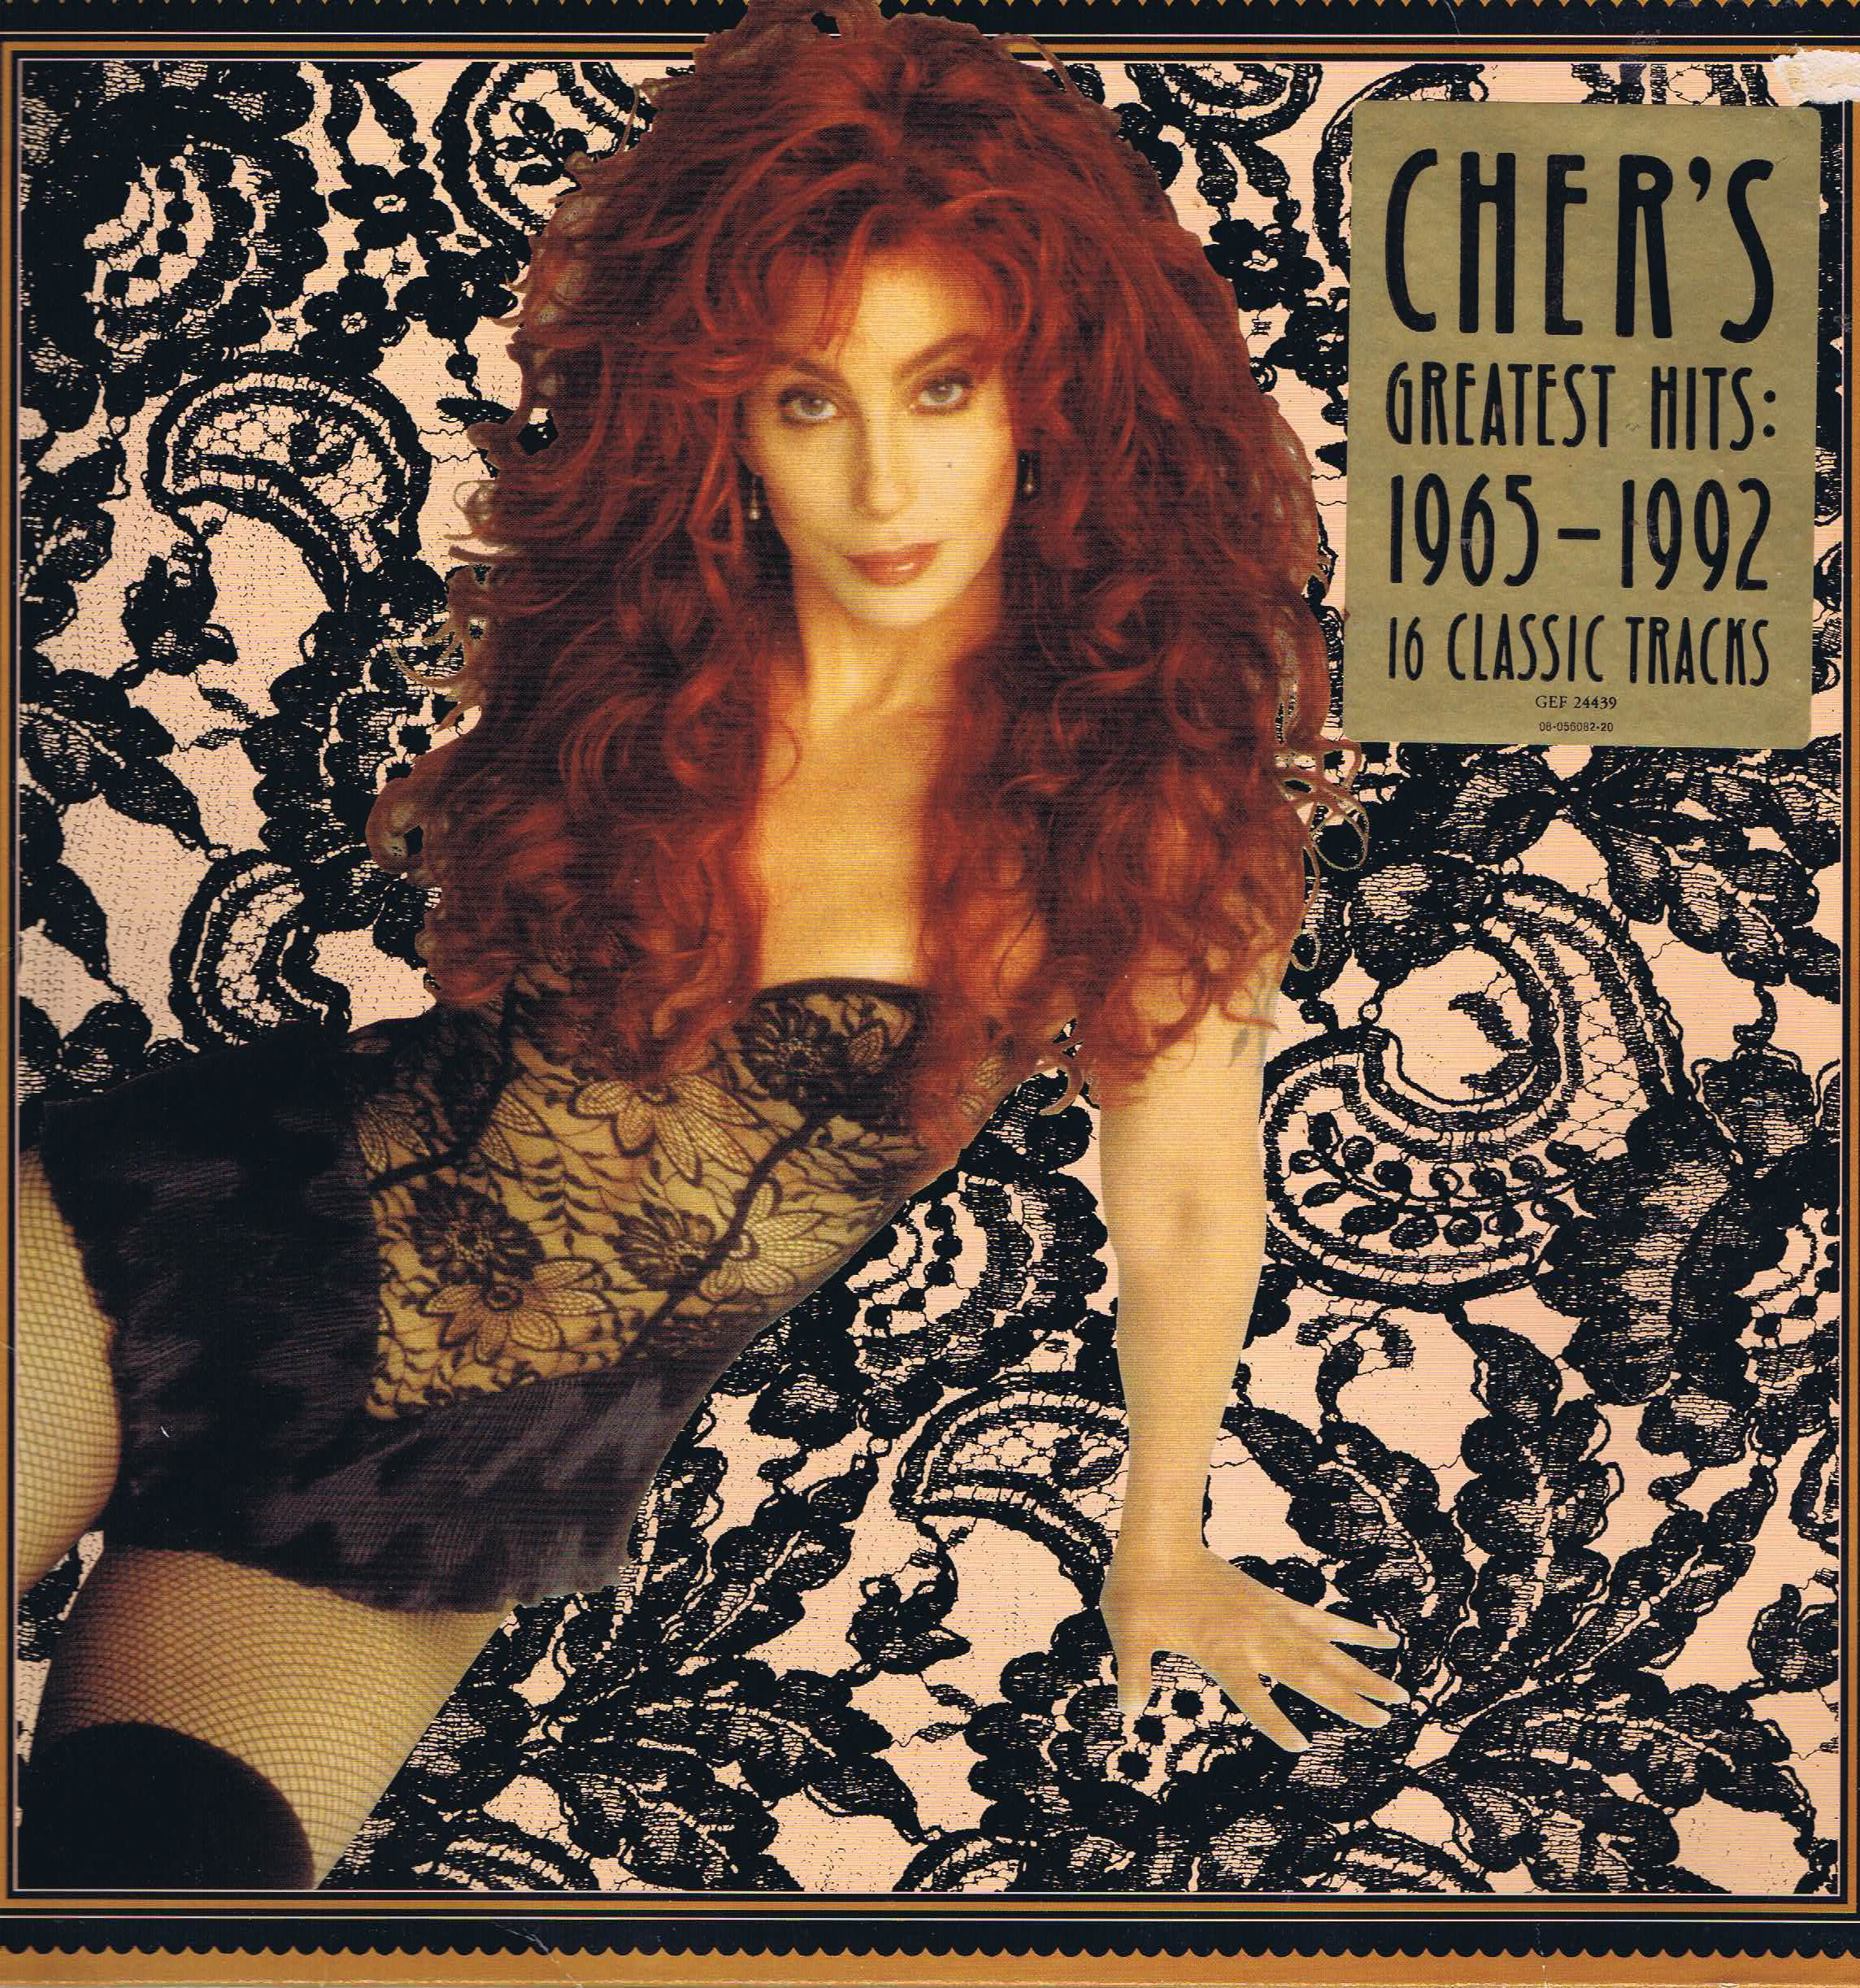 Cher Cher S Greatest Hits 1965 1992 Gef 24439 Double